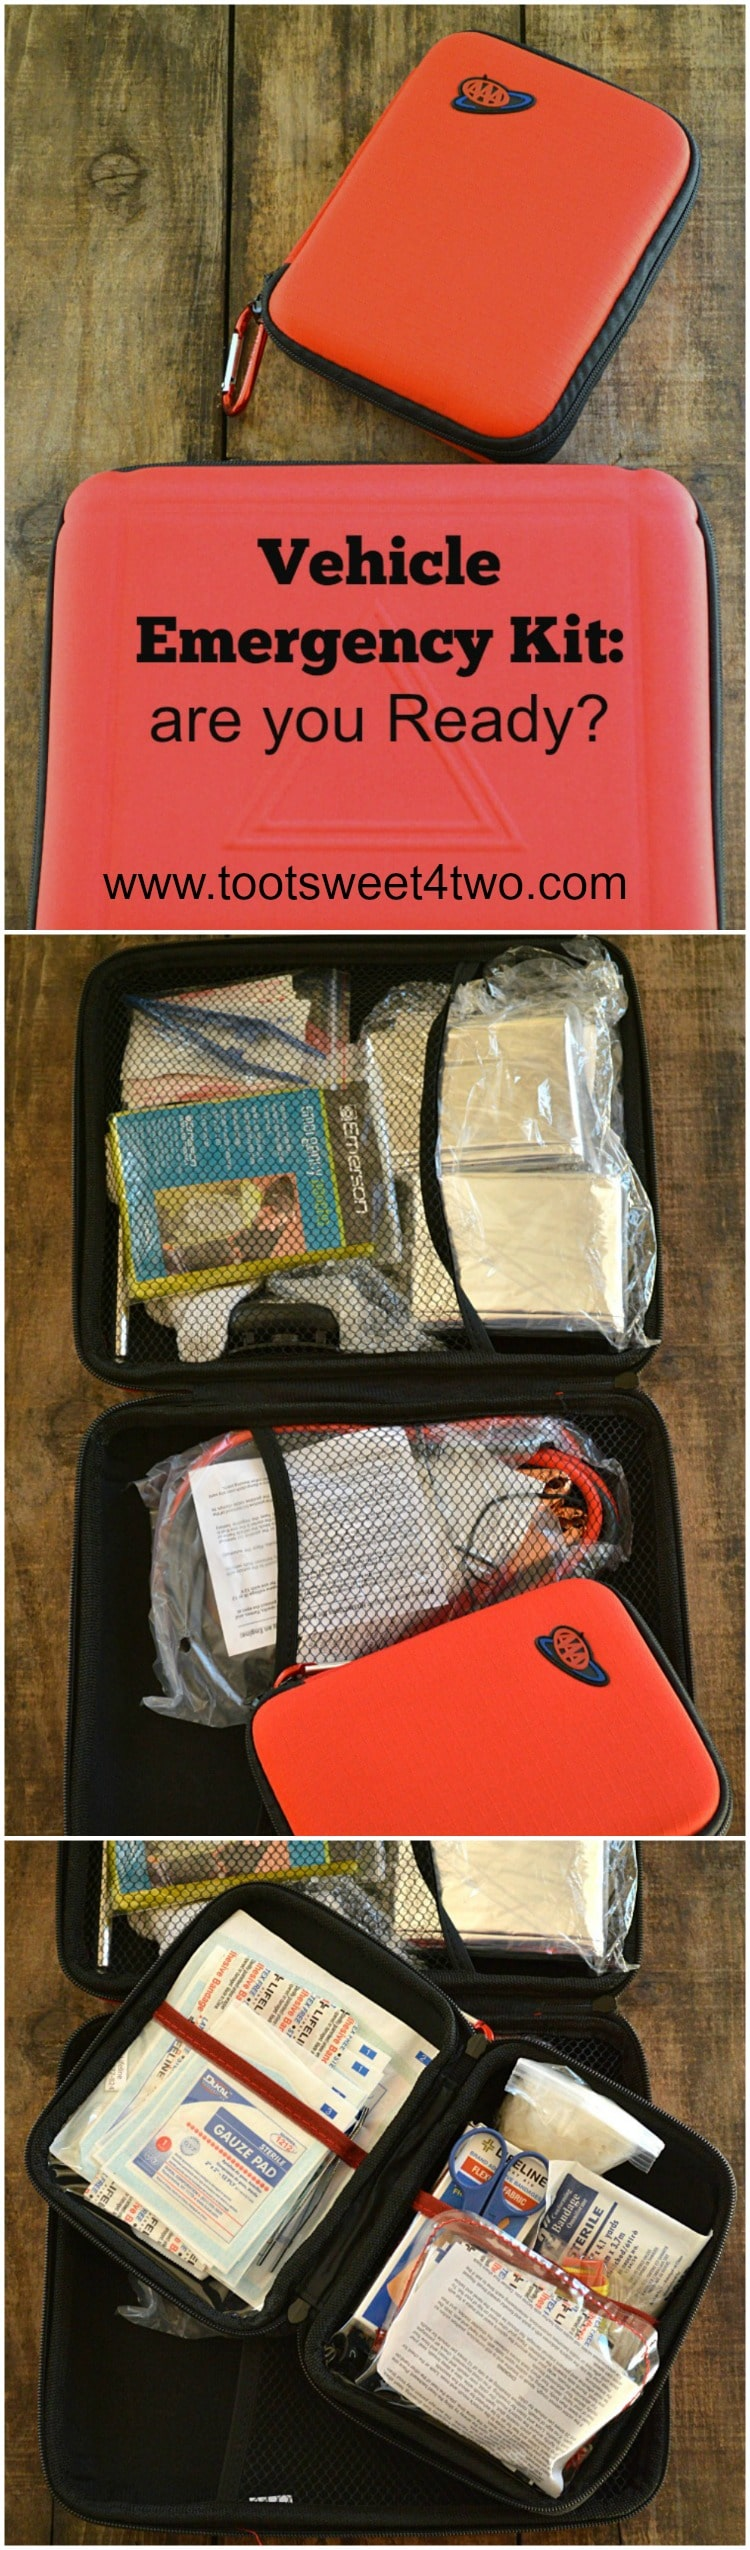 Vehicle Emergency Kit are you Ready Pinterest collage